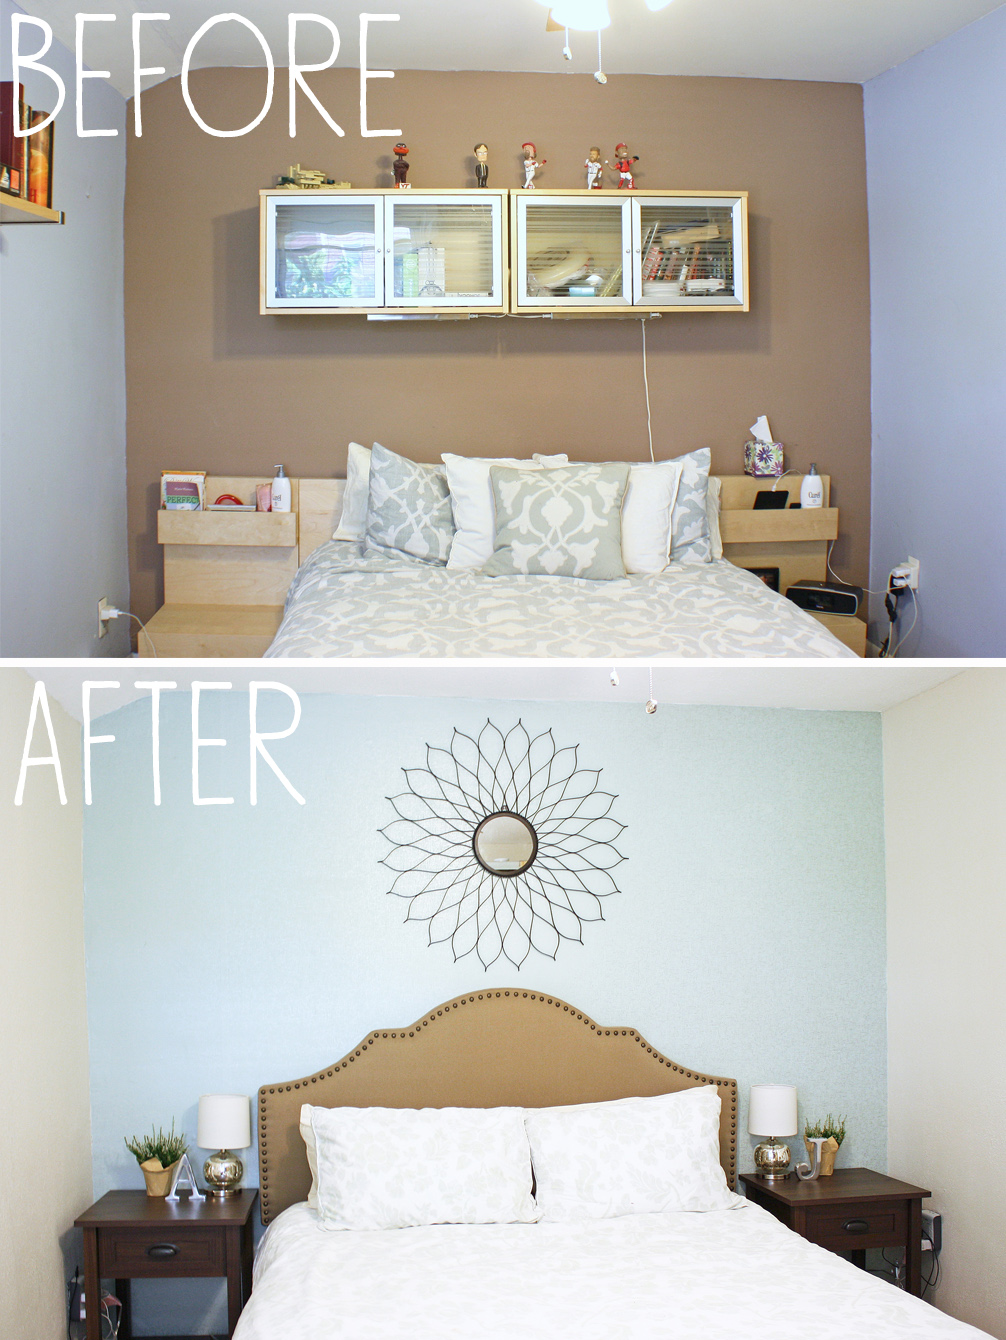 Sticking wallpaper - an instruction from where and how to begin to glue wallpaper in a room